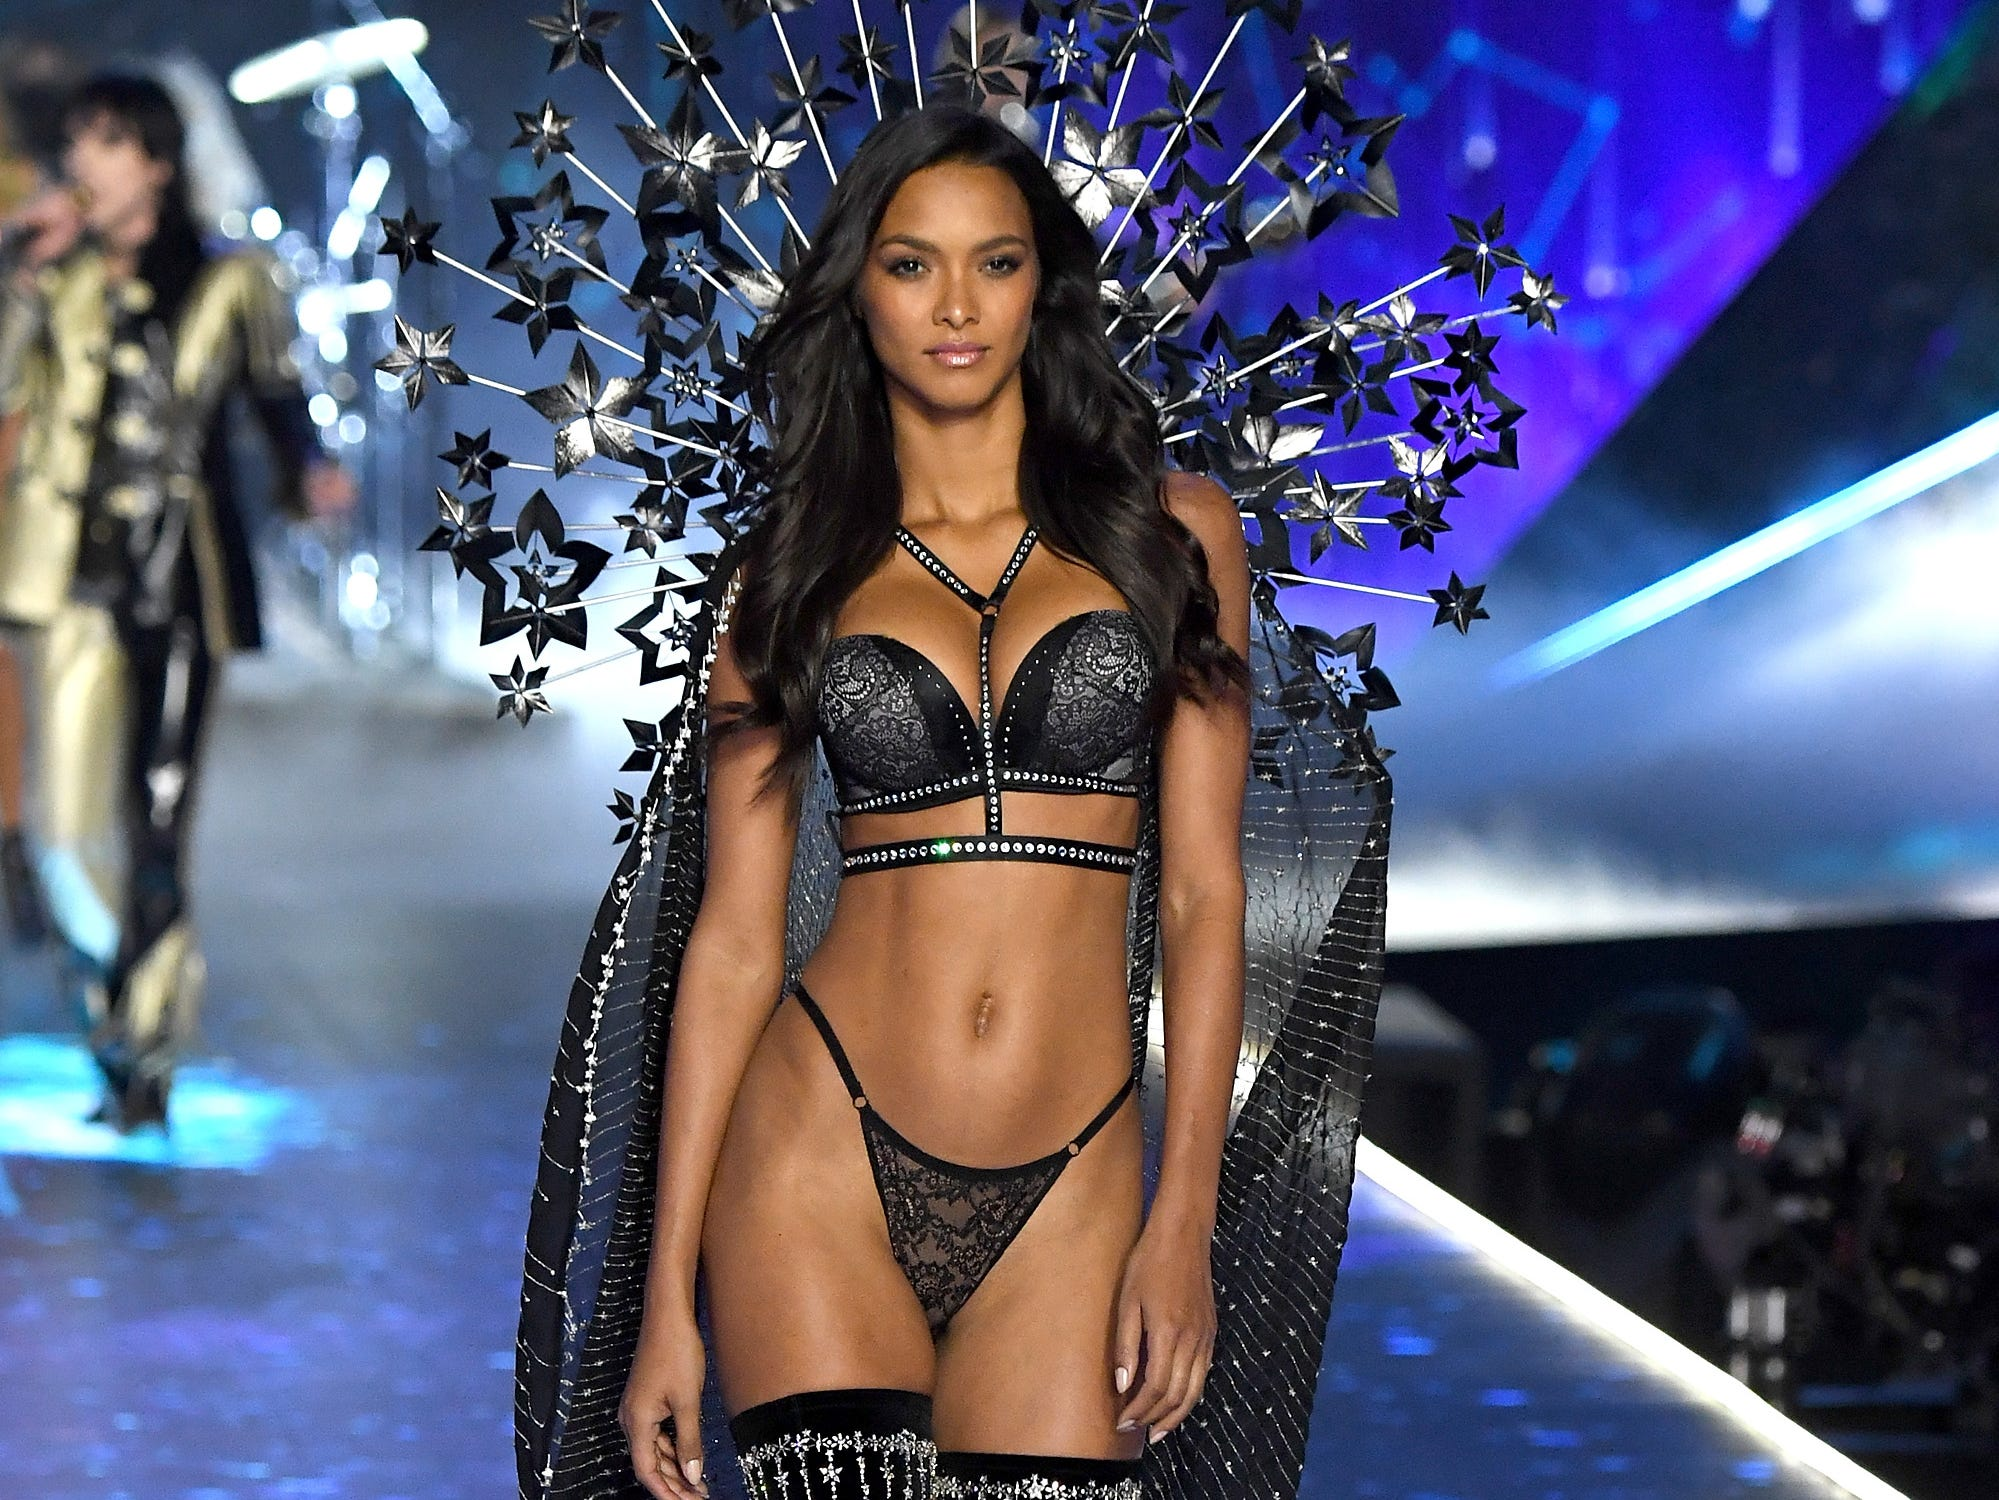 NEW YORK, NY - NOVEMBER 08:  Lais Ribeiro walks the runway during the 2018 Victoria's Secret Fashion Show at Pier 94 on November 8, 2018 in New York City.  (Photo by Kevin Mazur/WireImage) ORG XMIT: 775255601 ORIG FILE ID: 1059371422